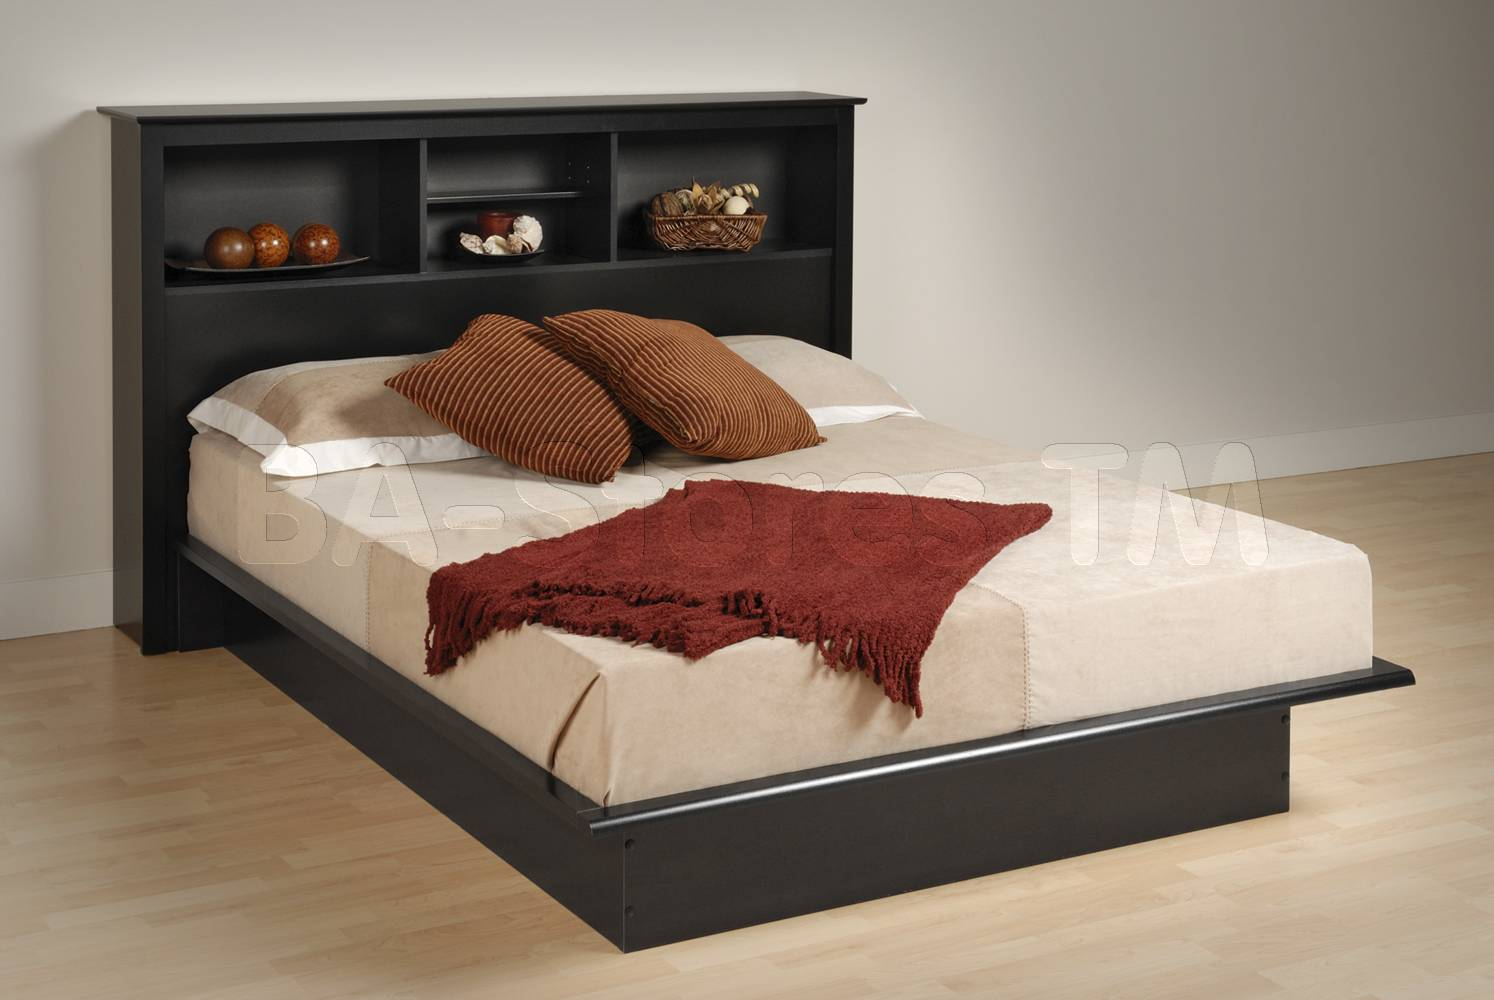 Wooden Headboard Designs Beds Bed Design